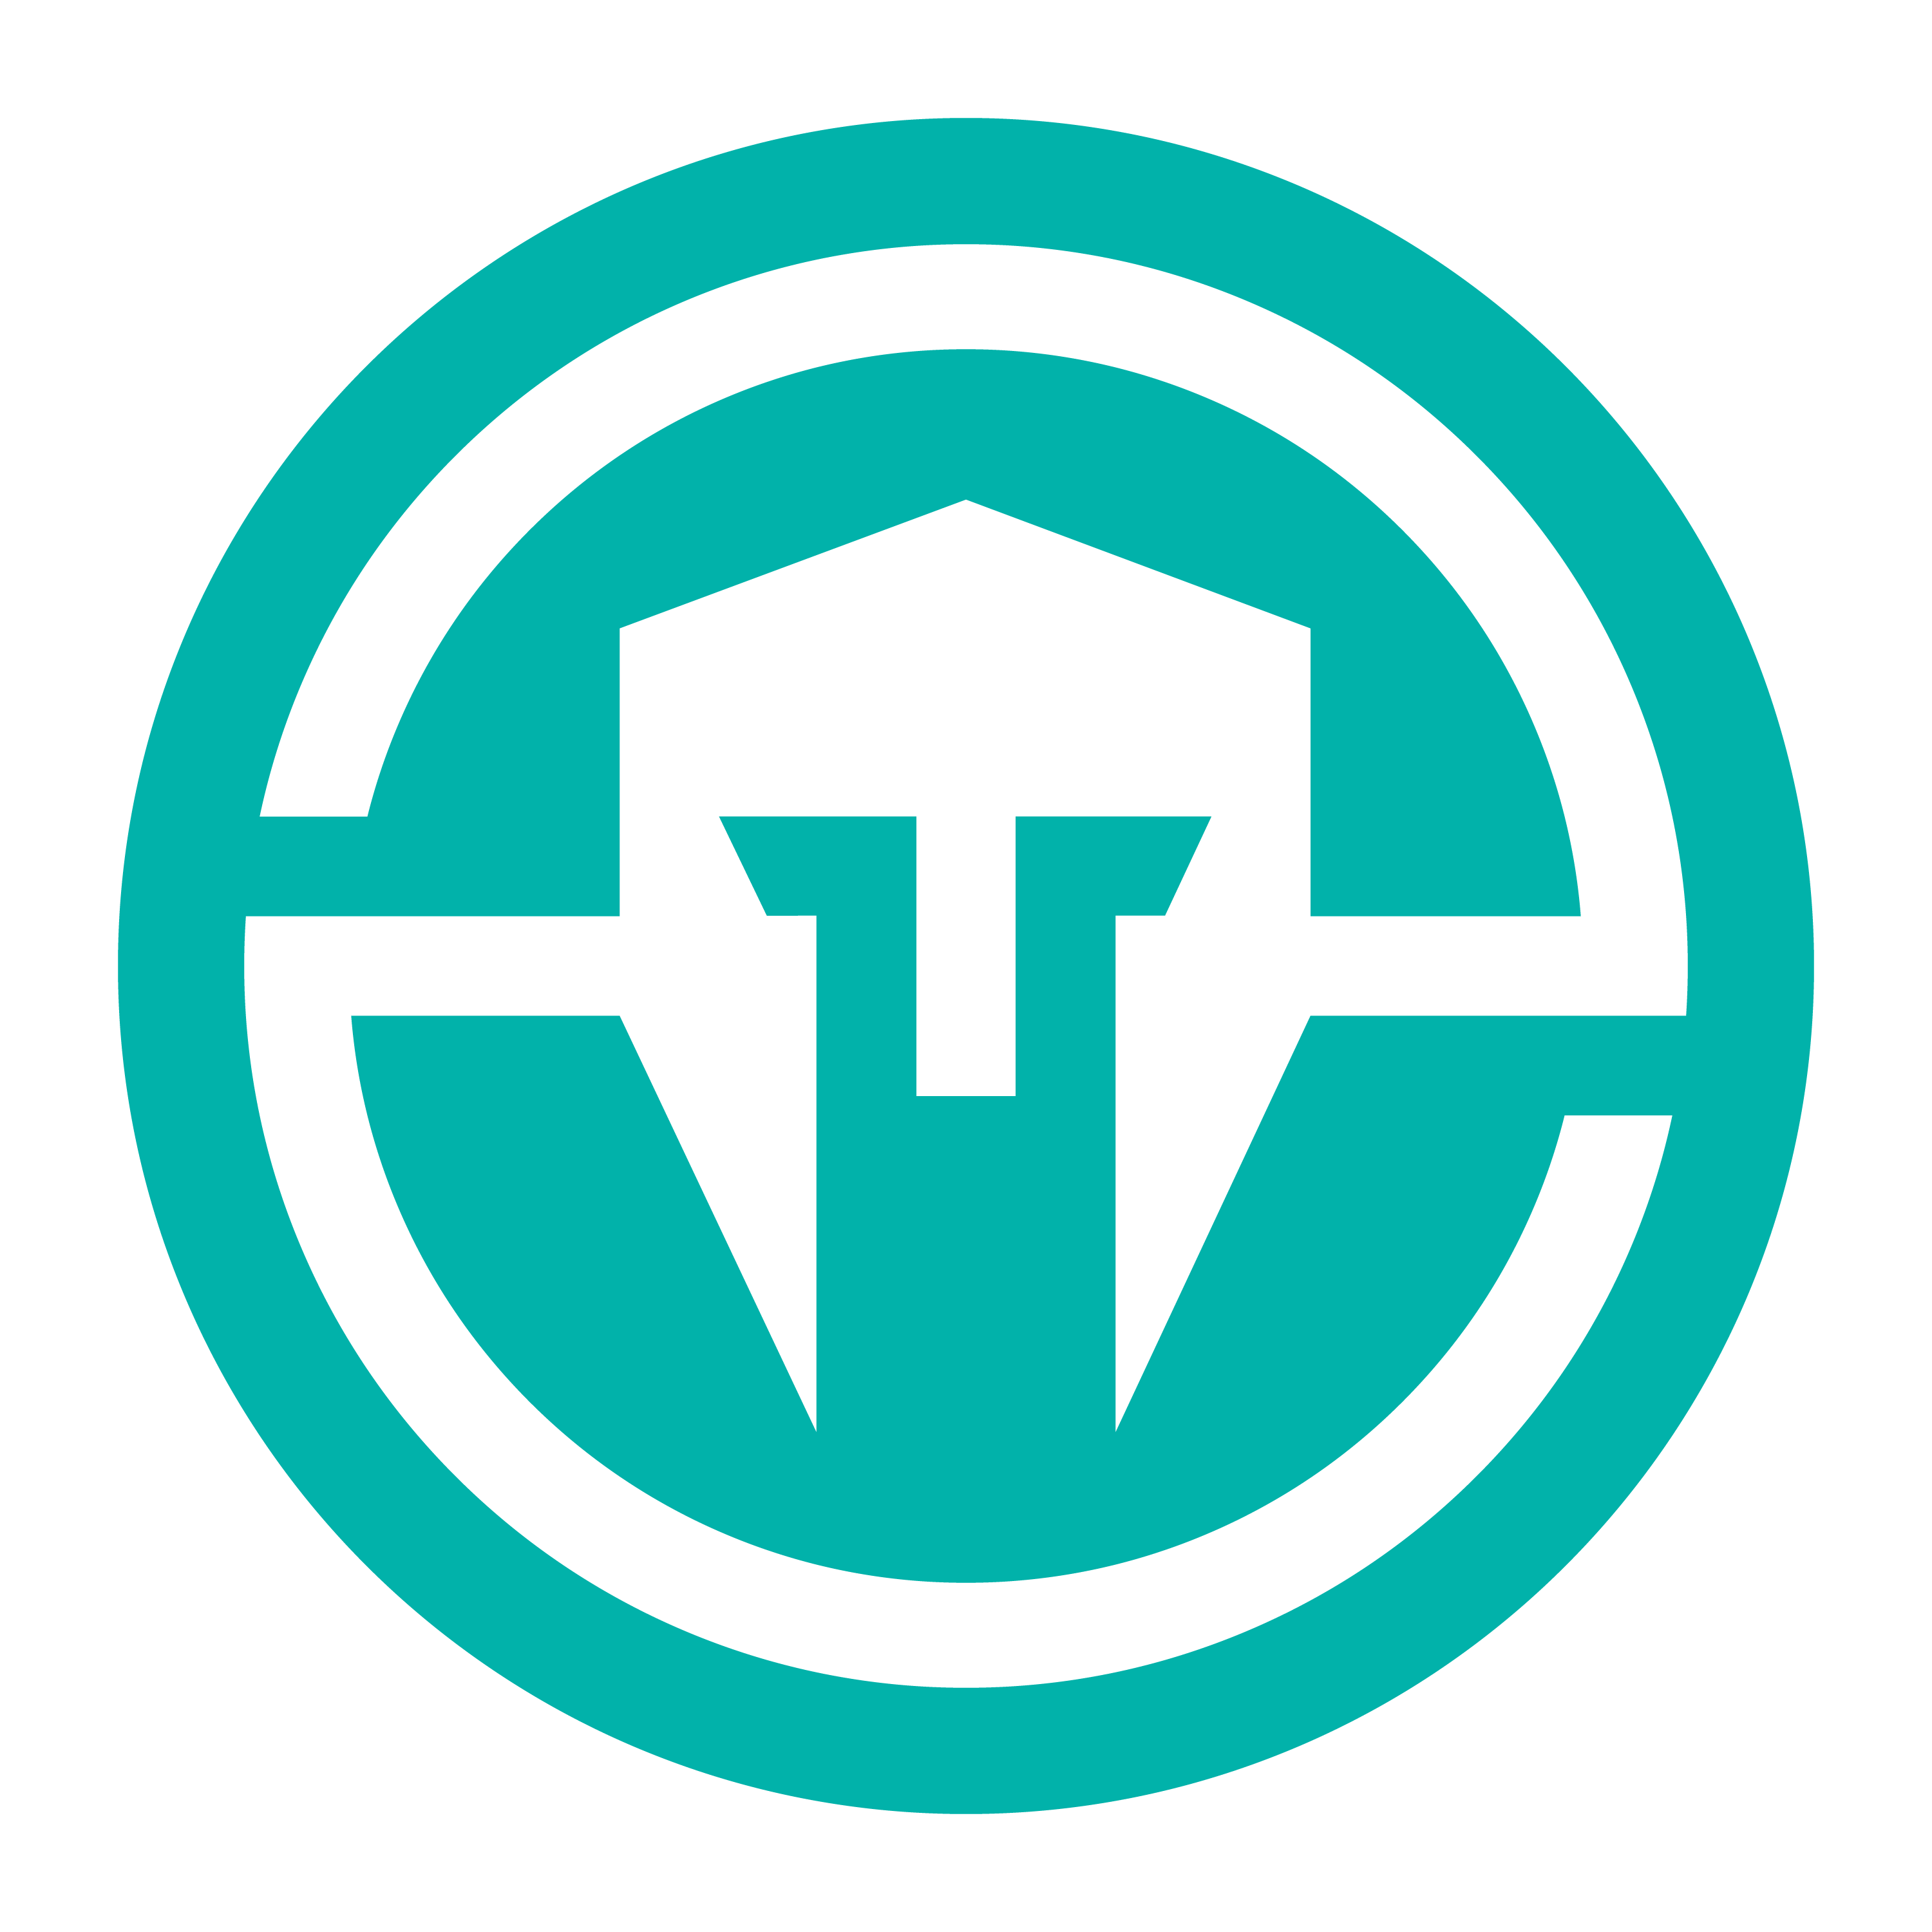 Immortals team logo